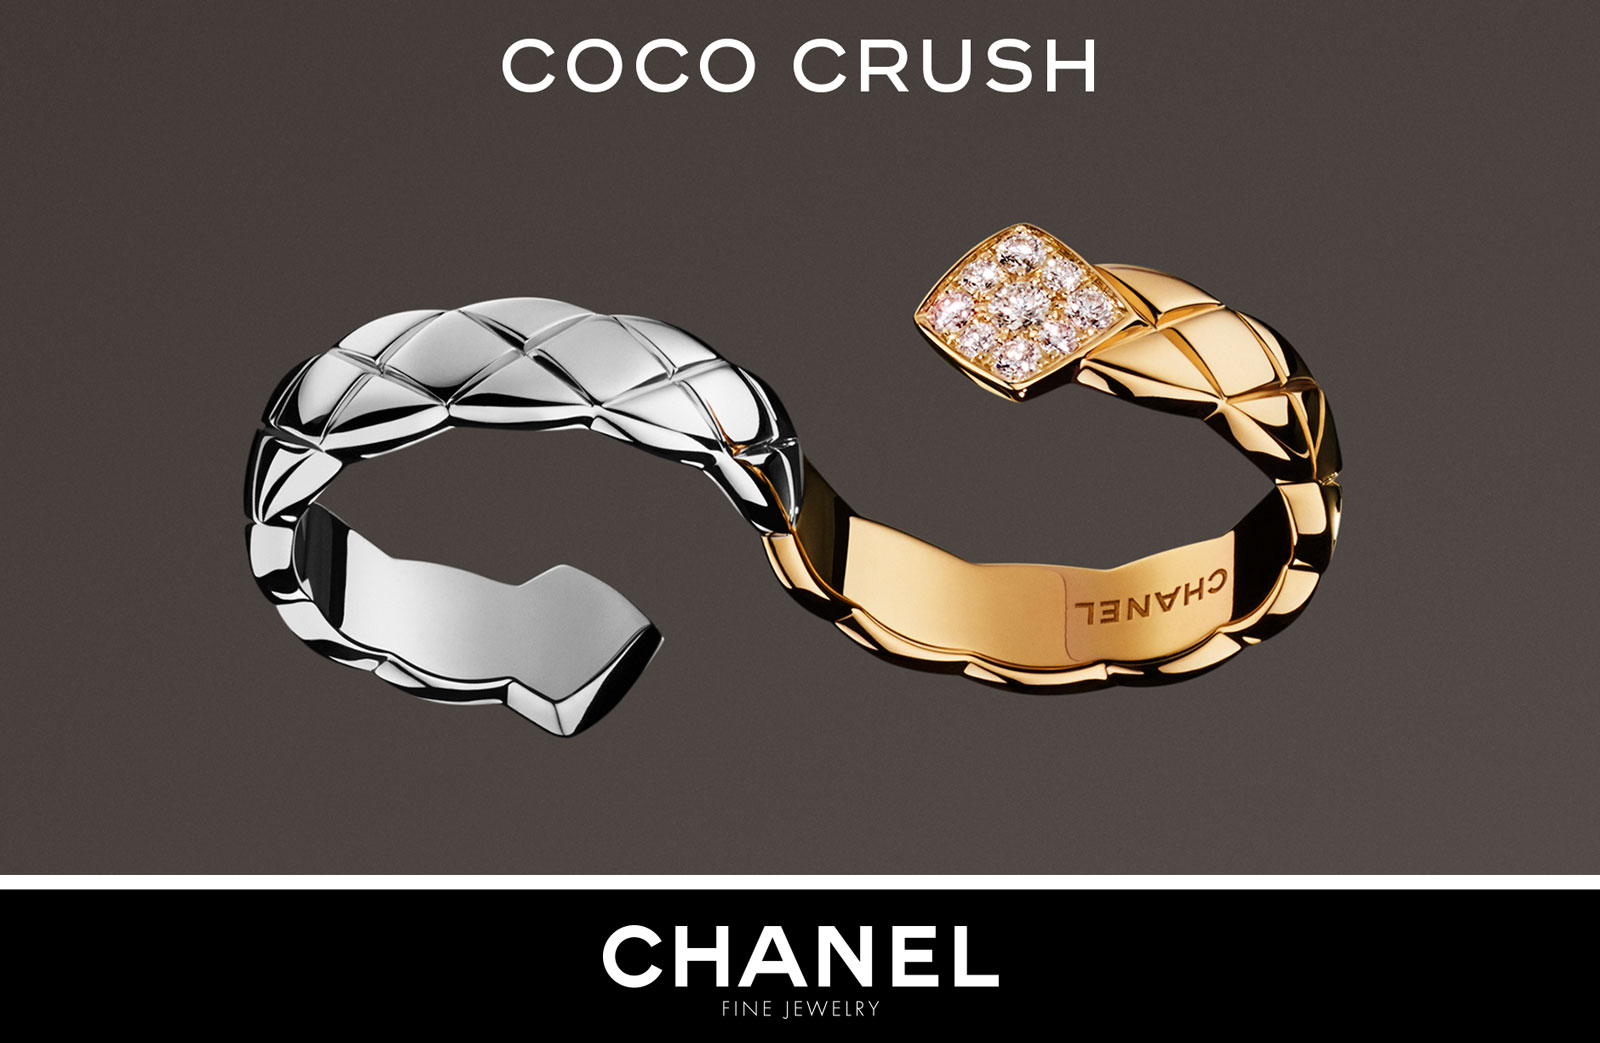 Coco Crush: Chanel - Fine Jewelry